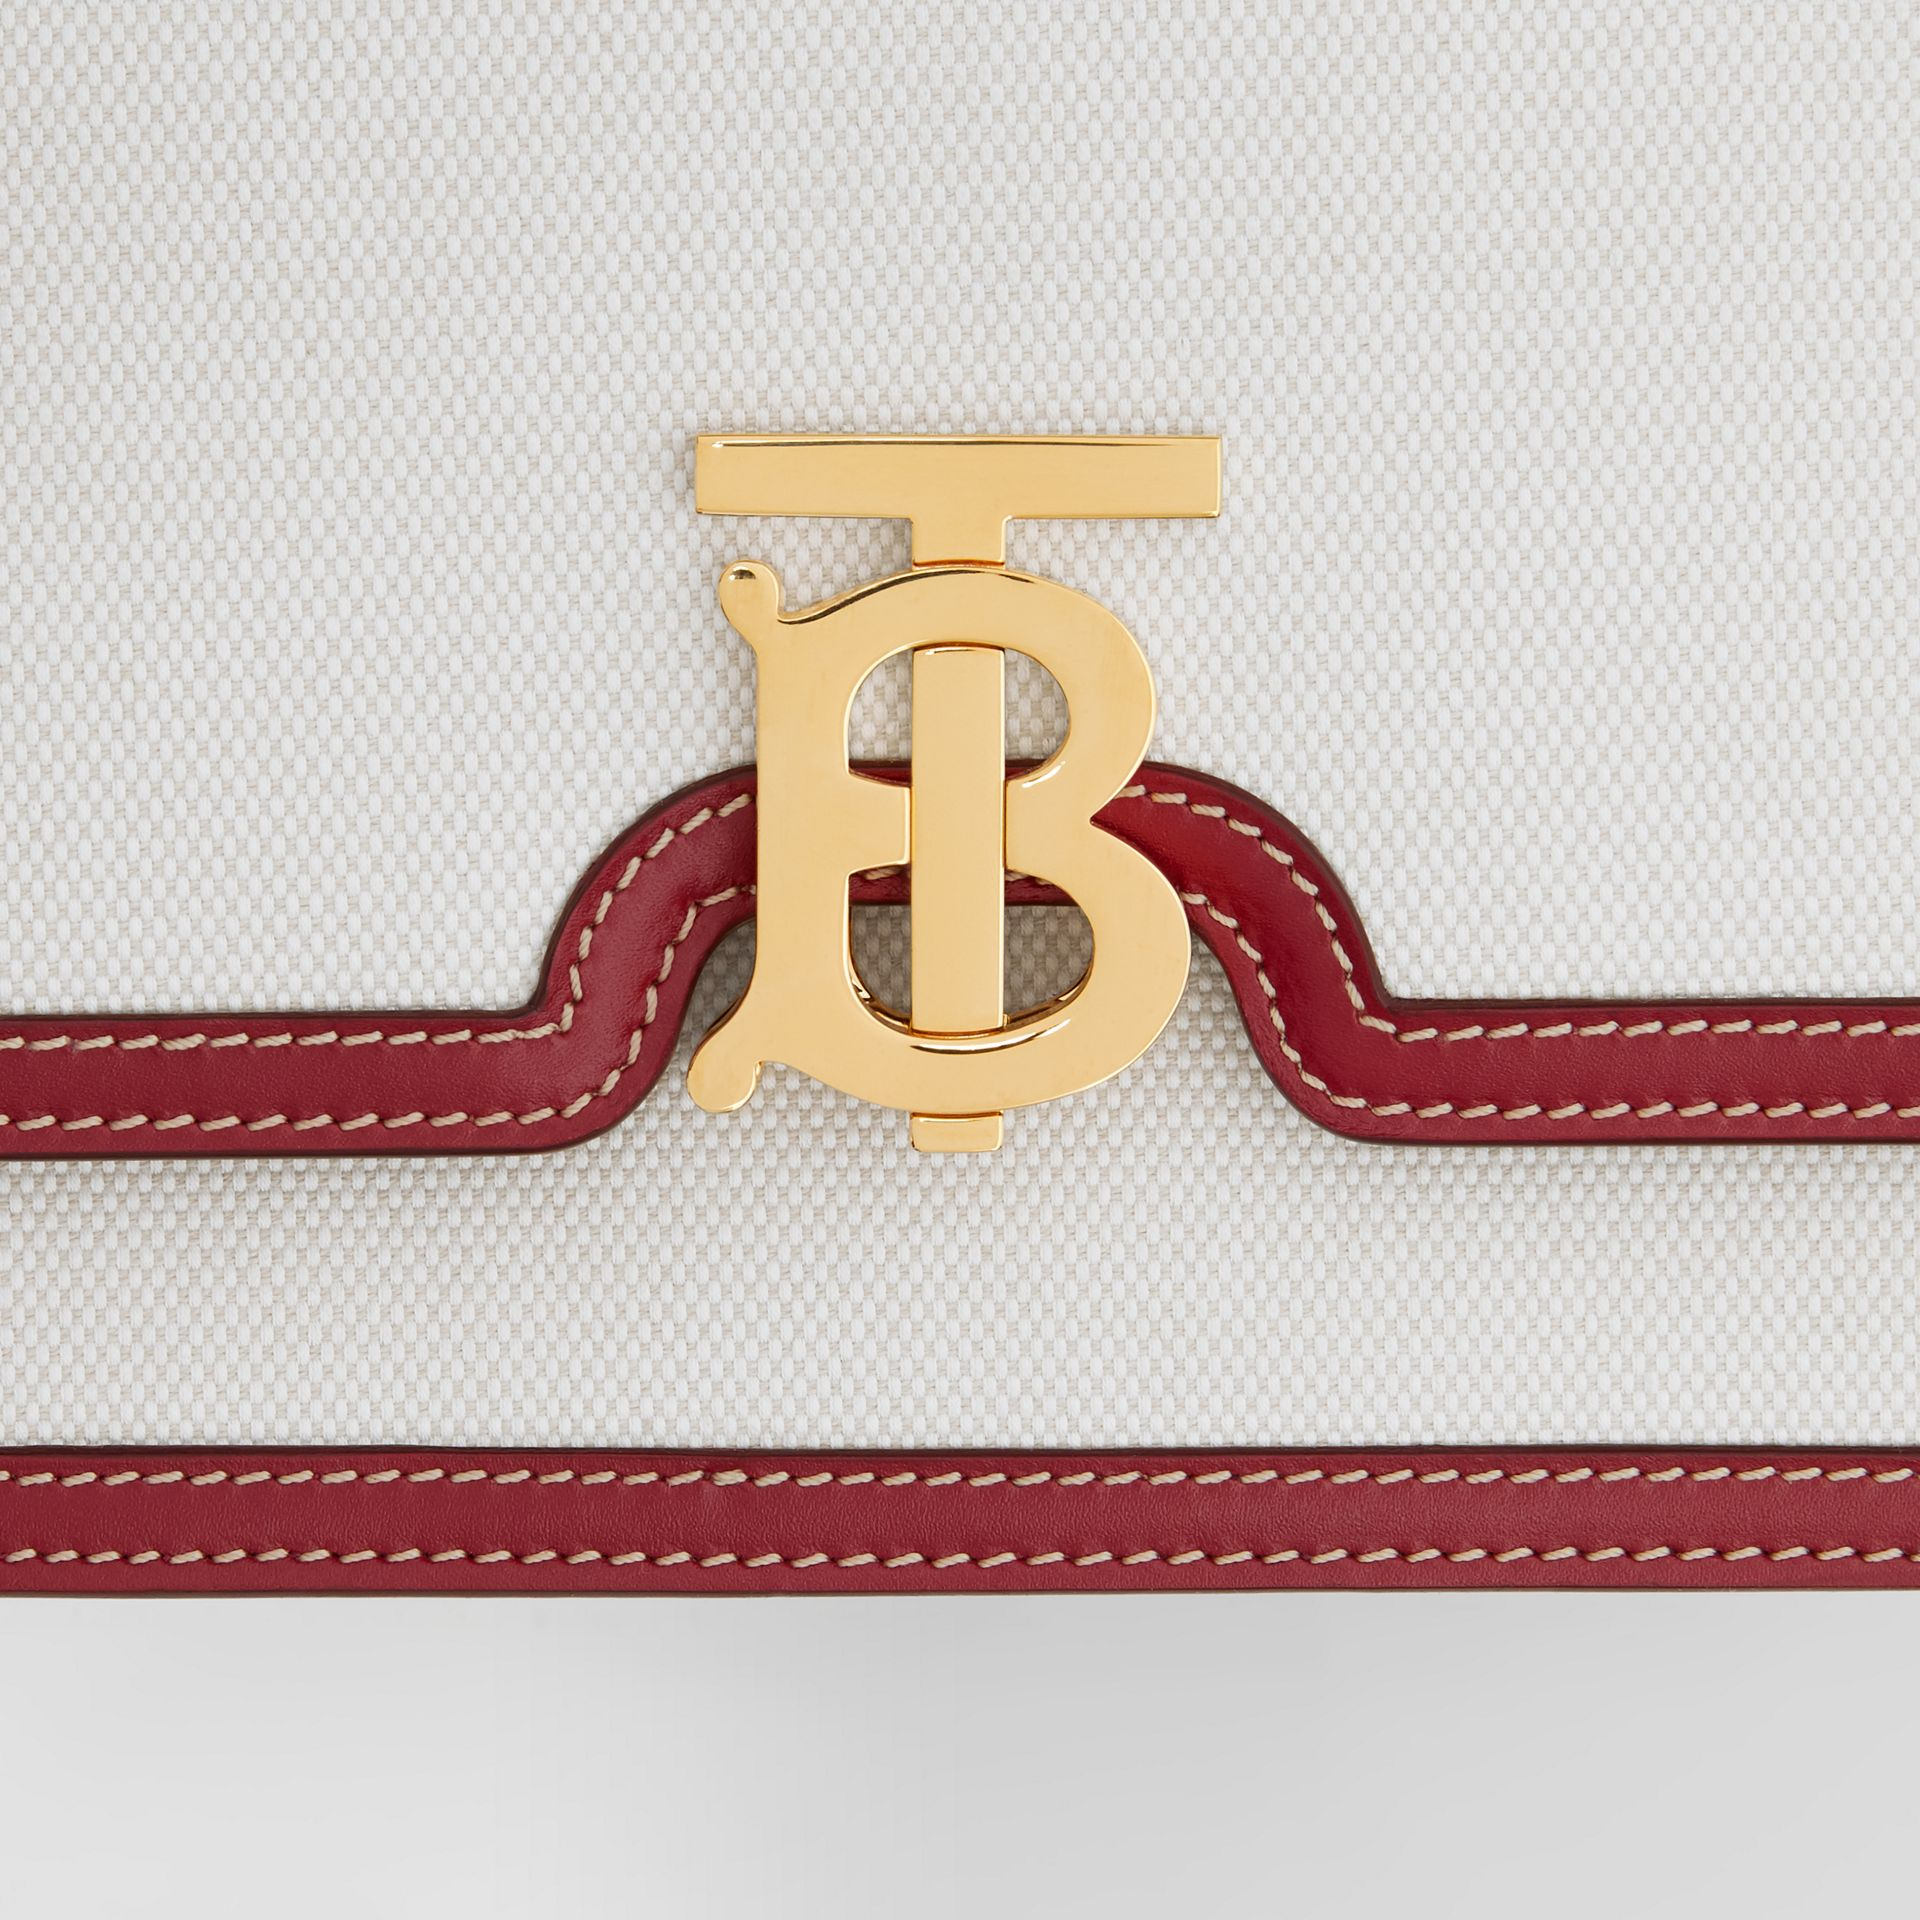 Small Two-tone Canvas and Leather TB Bag in Natural/dark Carmine - Women | Burberry Hong Kong S.A.R - gallery image 8